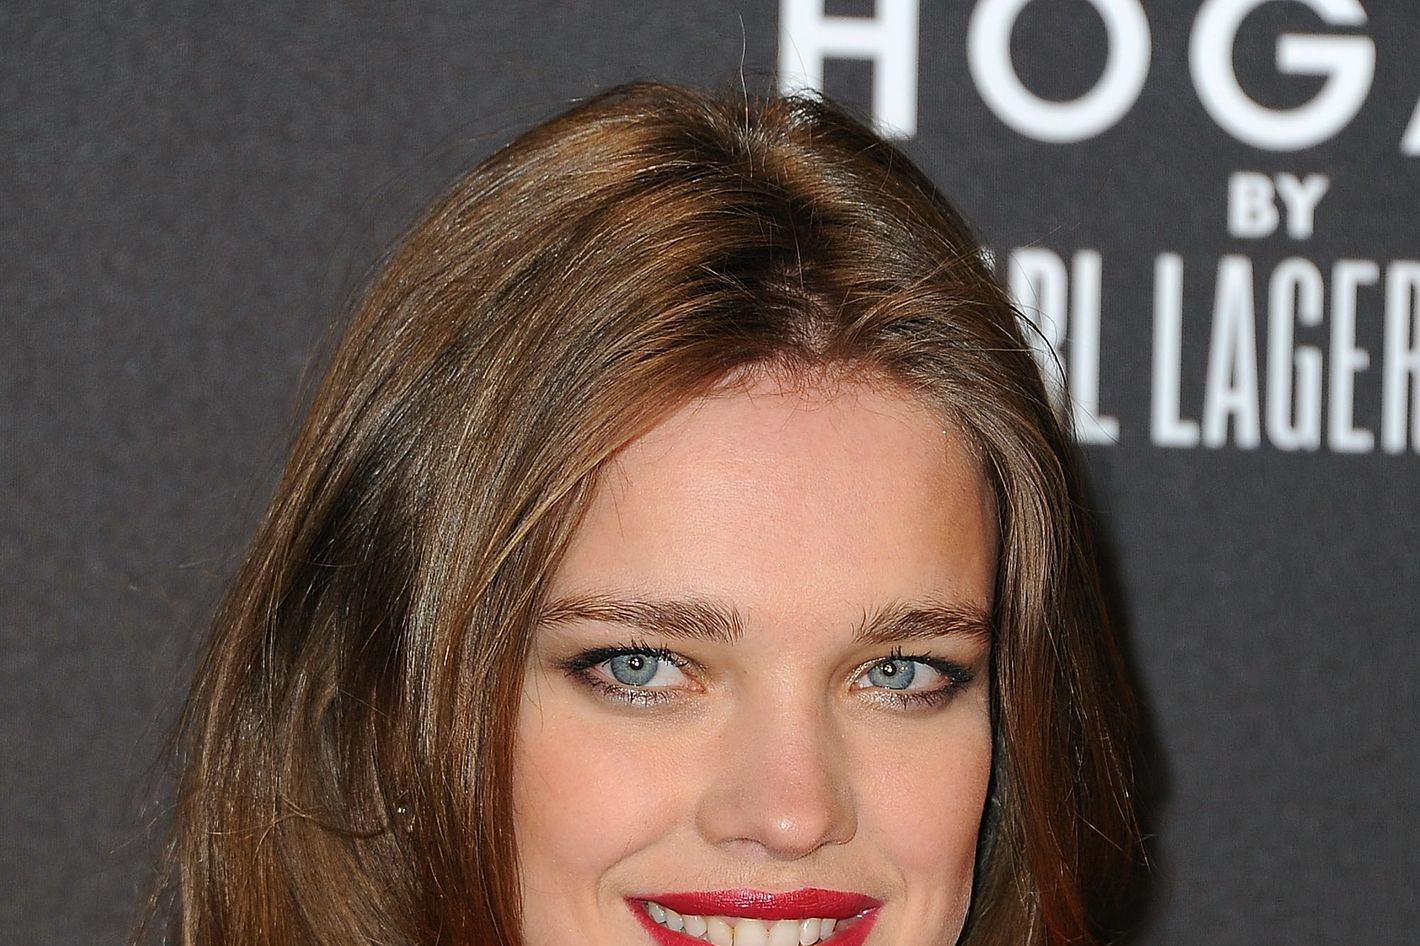 Paparazzi Natalia Vodianova naked (46 photos), Ass, Cleavage, Twitter, cleavage 2015